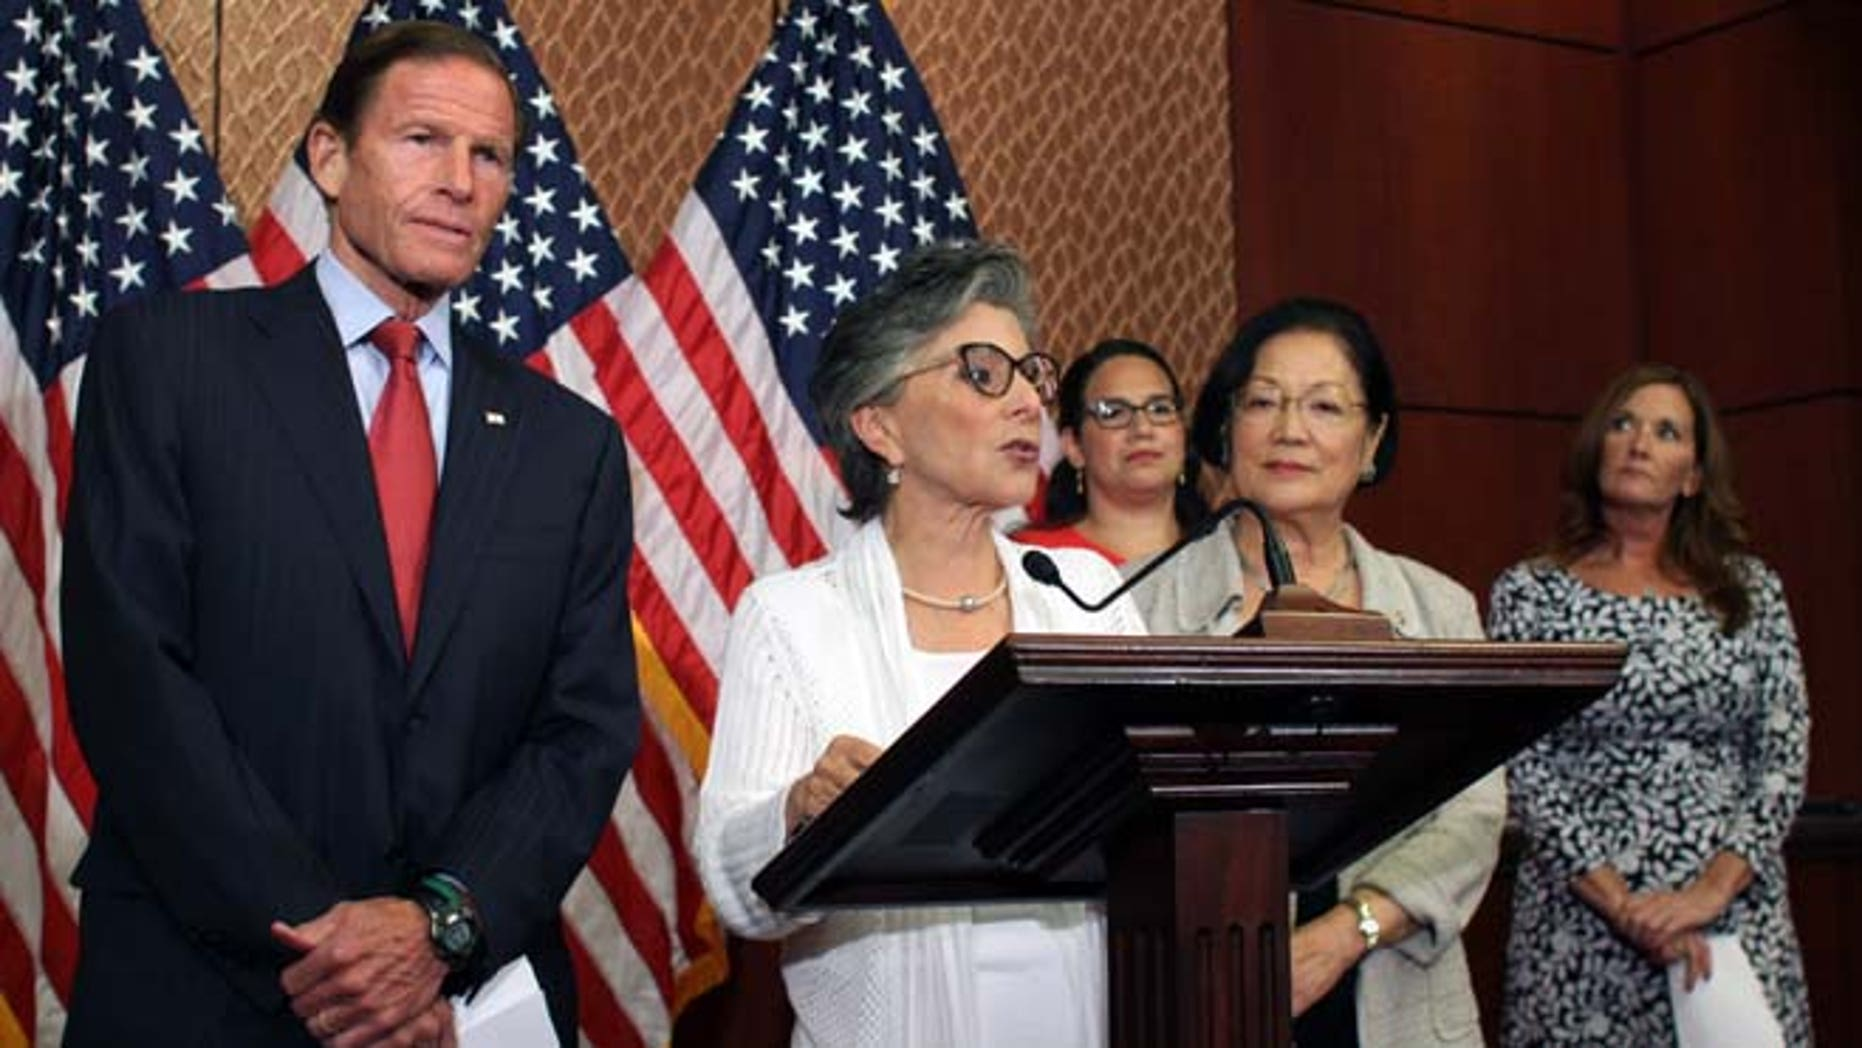 Aug. 3, 2015: Sen. Barbara Boxer, D-Calif., speaks to reporters in defense of Planned Parenthood as Sens. Richard Blumenthal, D-Conn., left, and Mazie Hirono, D-Hawaii, right, listen.